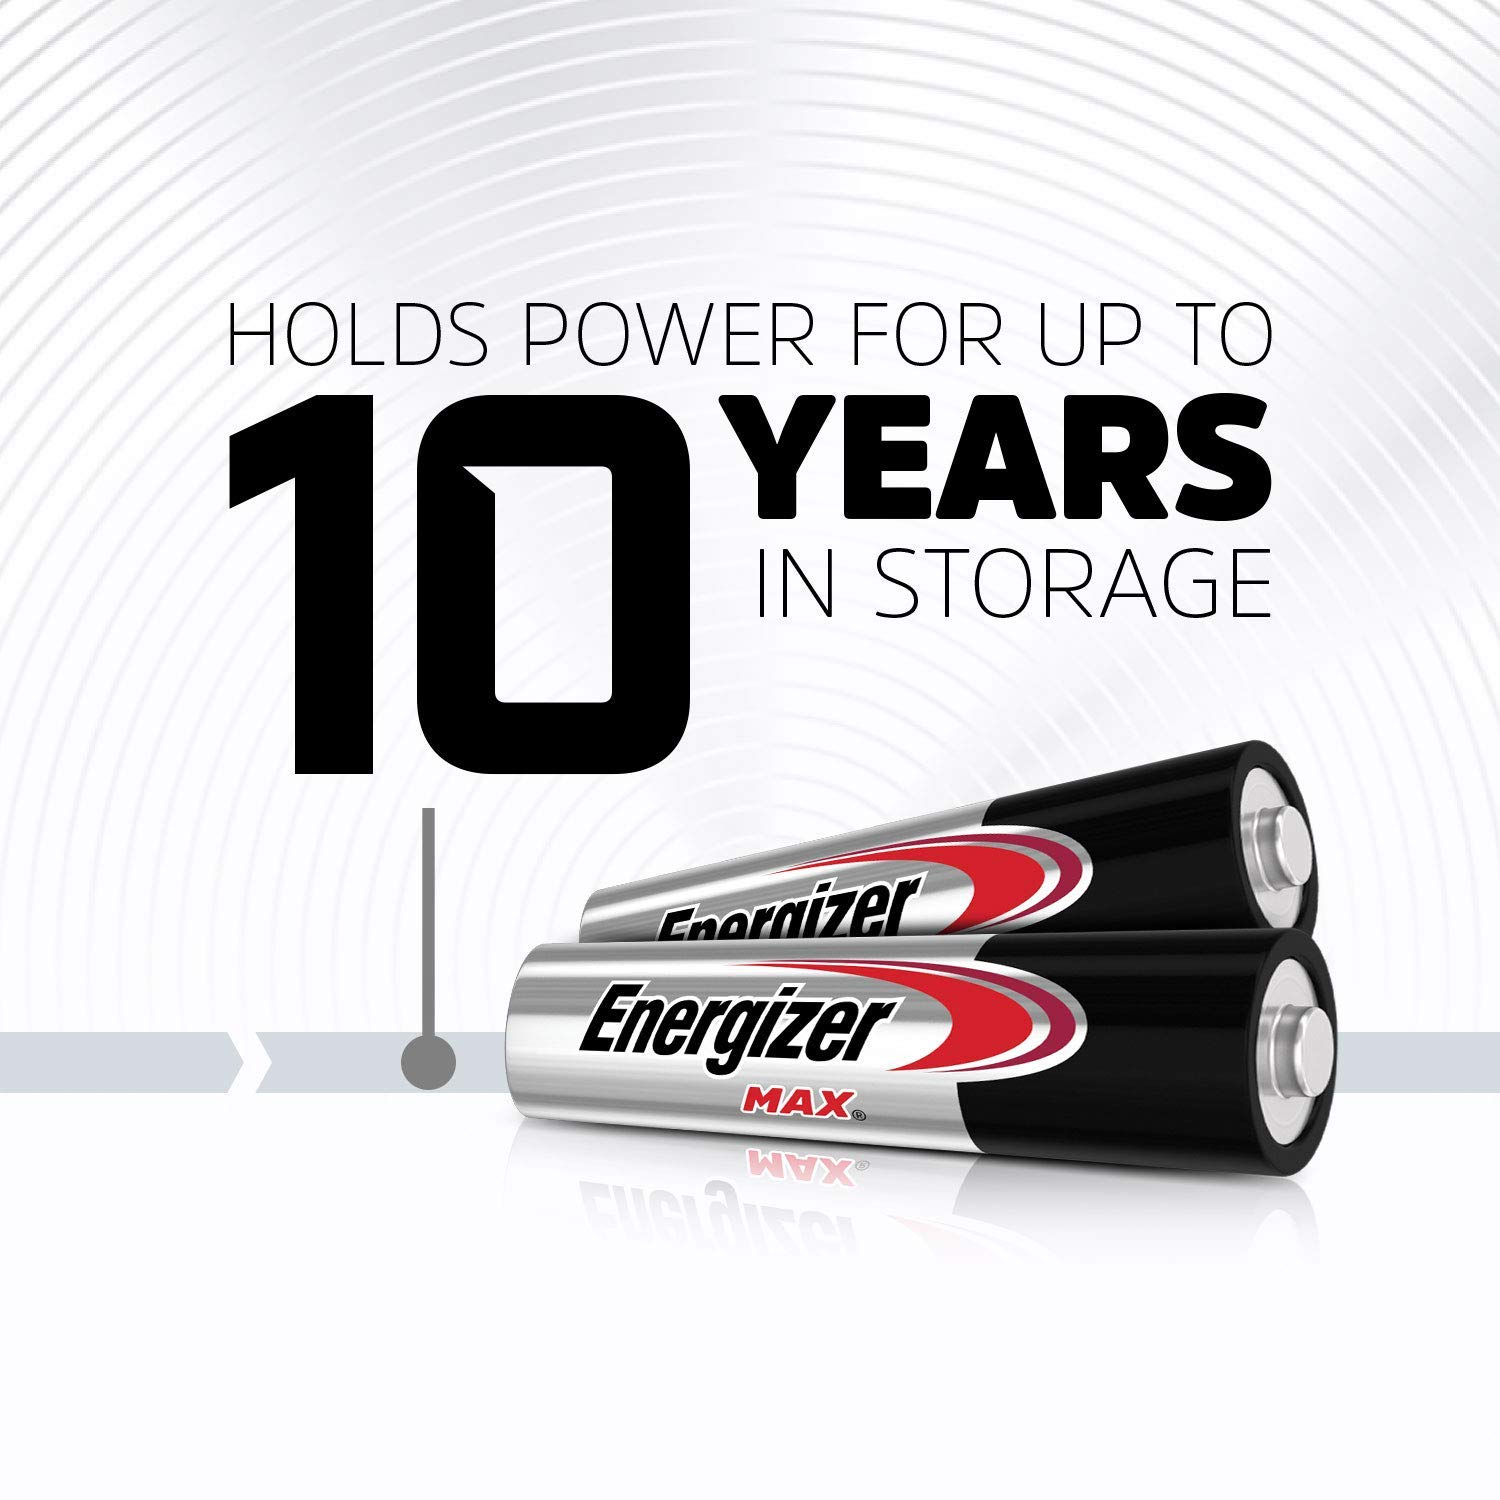 2023 or Later Bulk Packaging 24x AAA Energizer Max Alkaline E91//E92 Batteries Made in USA Exp Combo 24x AA